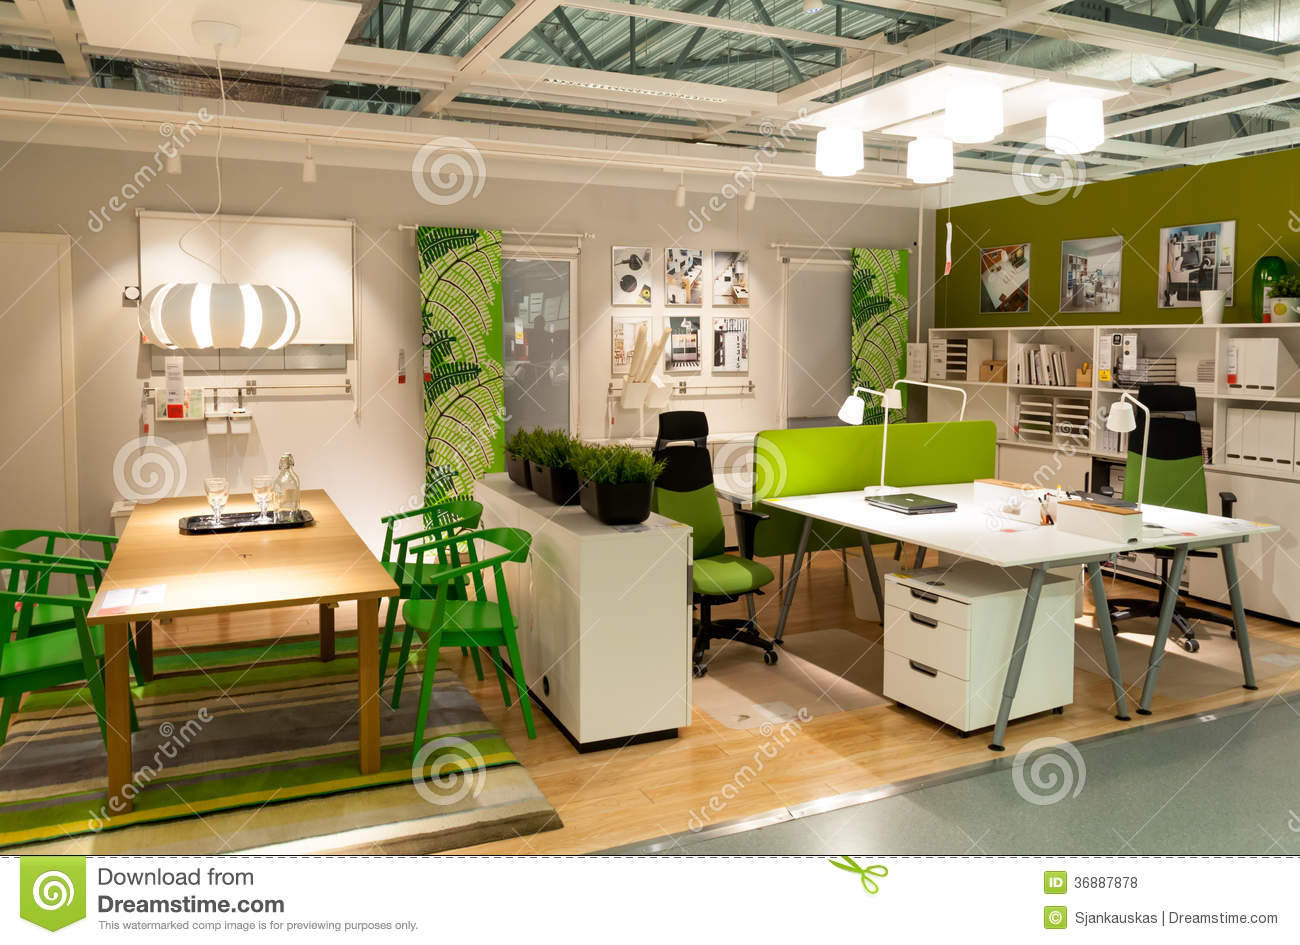 Furniture store ikea editorial stock photo image 36887878 Home sklep